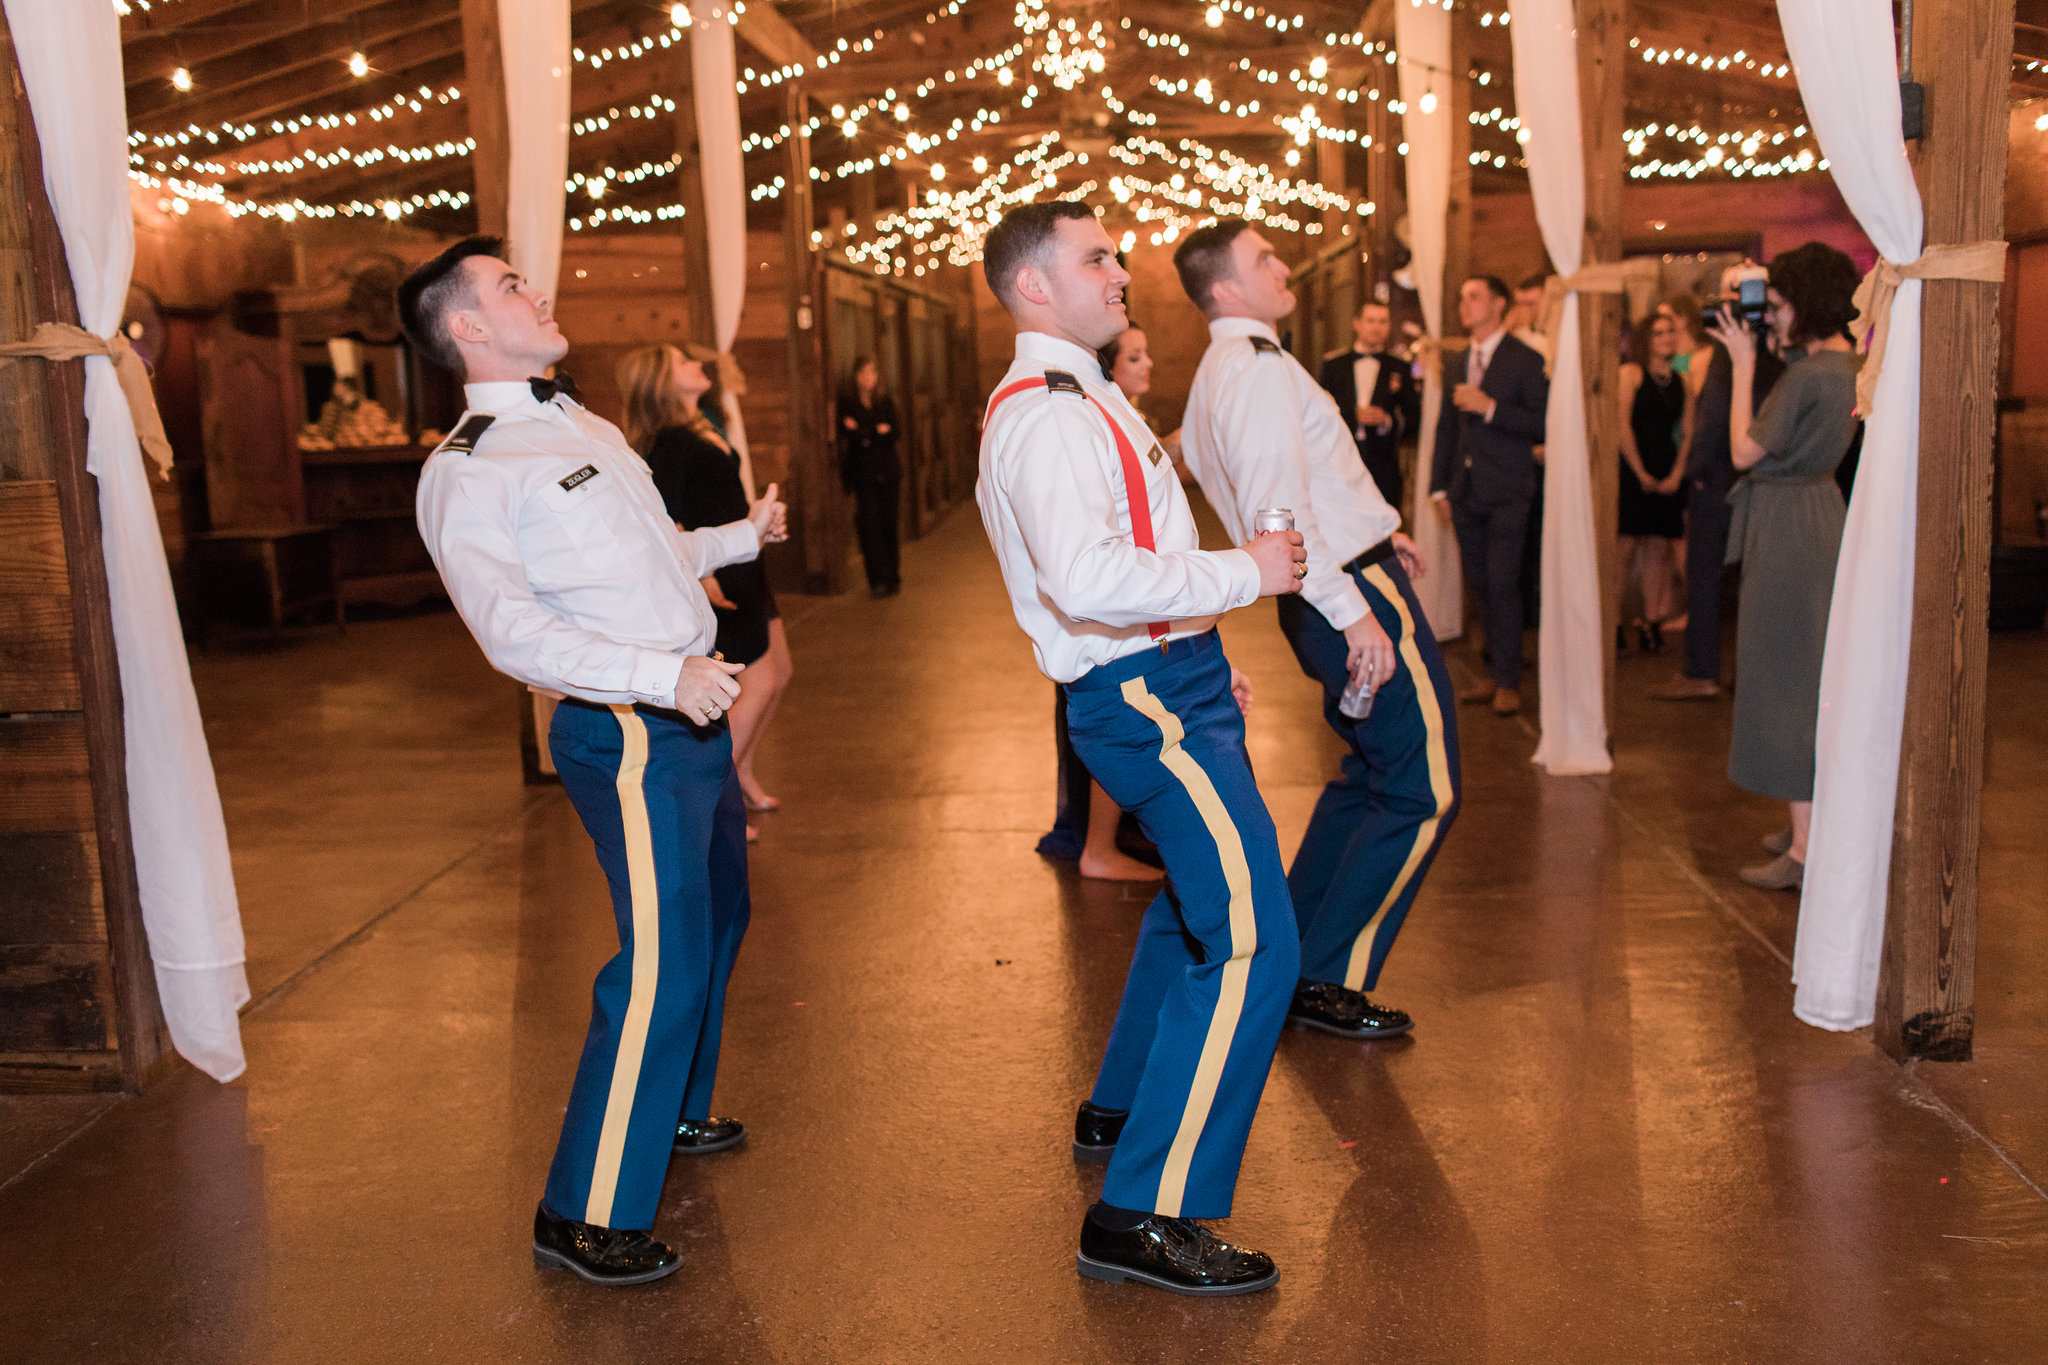 Andrea-brad-apt-b-photography-savannah-wedding-savannah-wedding-photographer-red-gate-barn-wedding-savannah-barn-rustic-wedding-first-dance-army-wedding-27.JPG